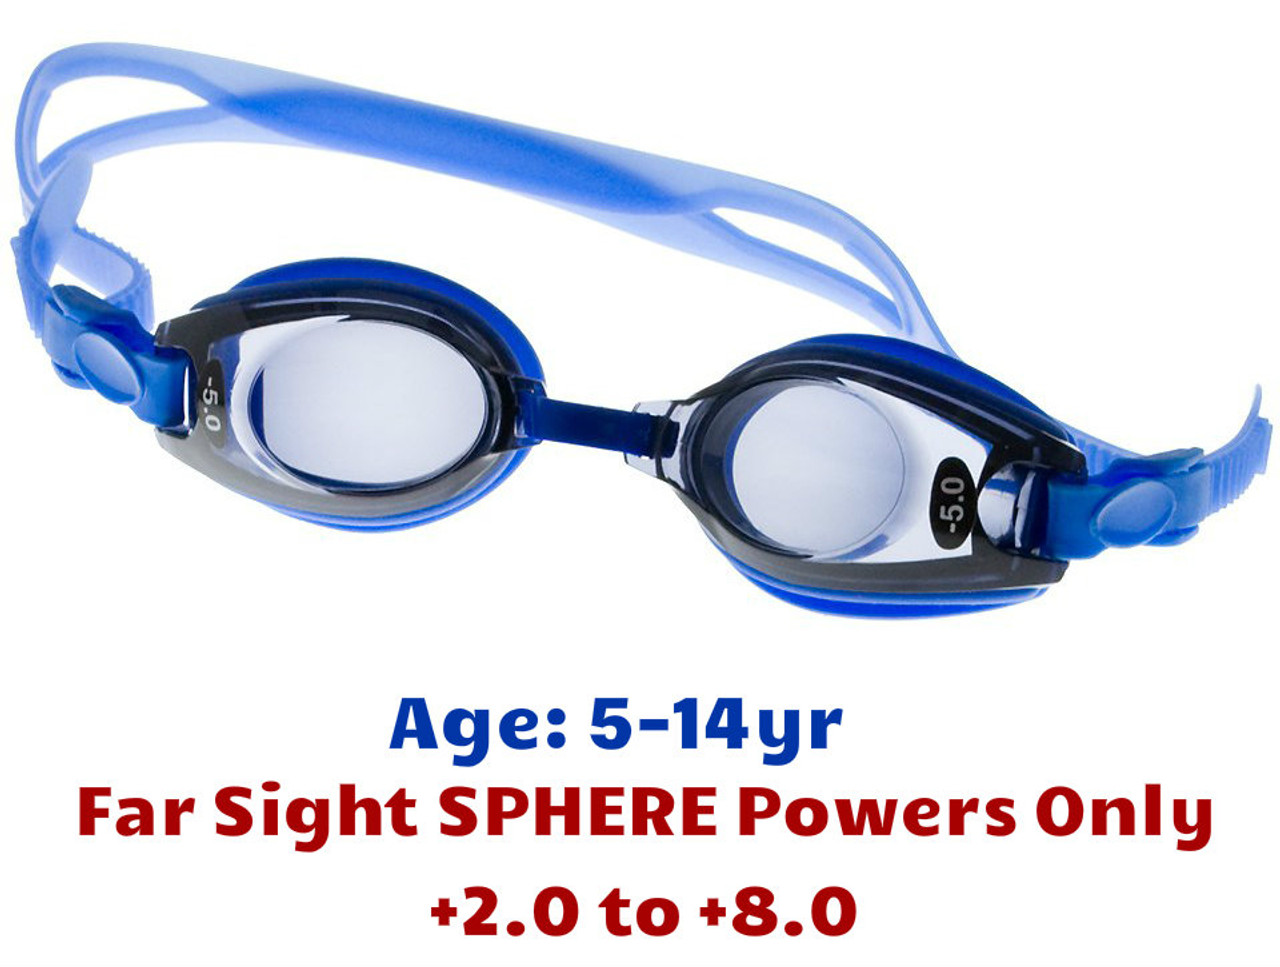 da1c688426 Kids Far Sight Prescription Swim Goggles Blue (Dark Grey Tinted Lenses)